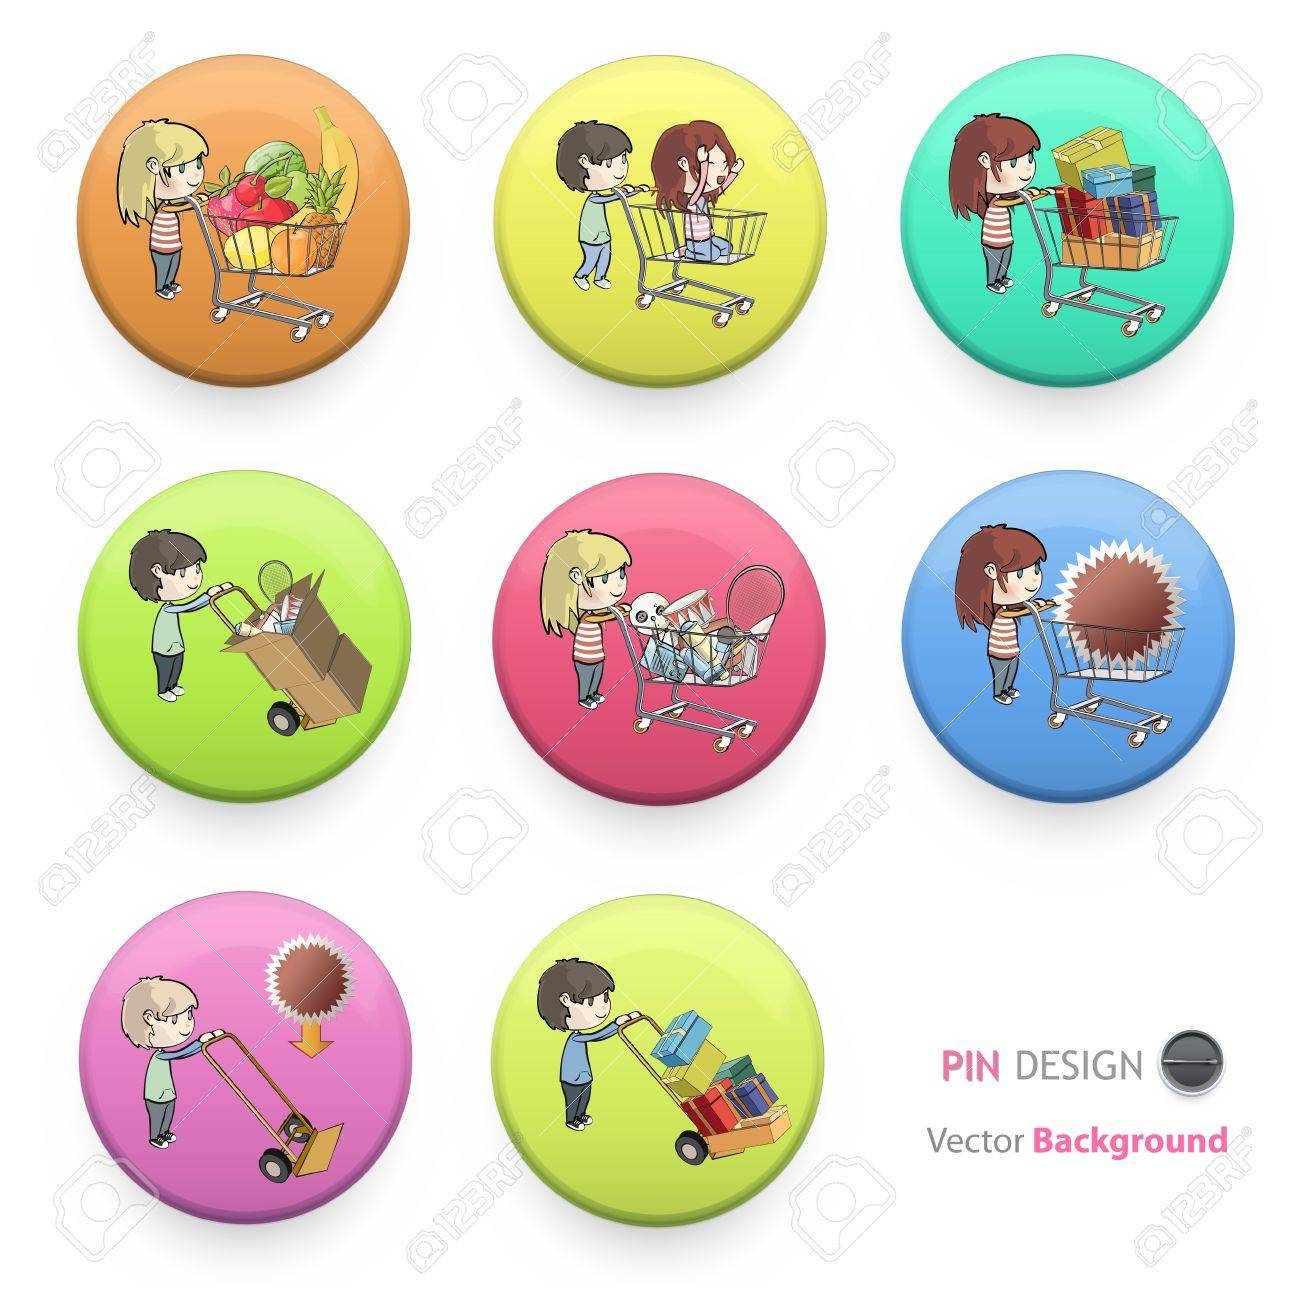 Kids buying many gifts and items printed on colorful badges. Vector design. Stock Vector - 17613700